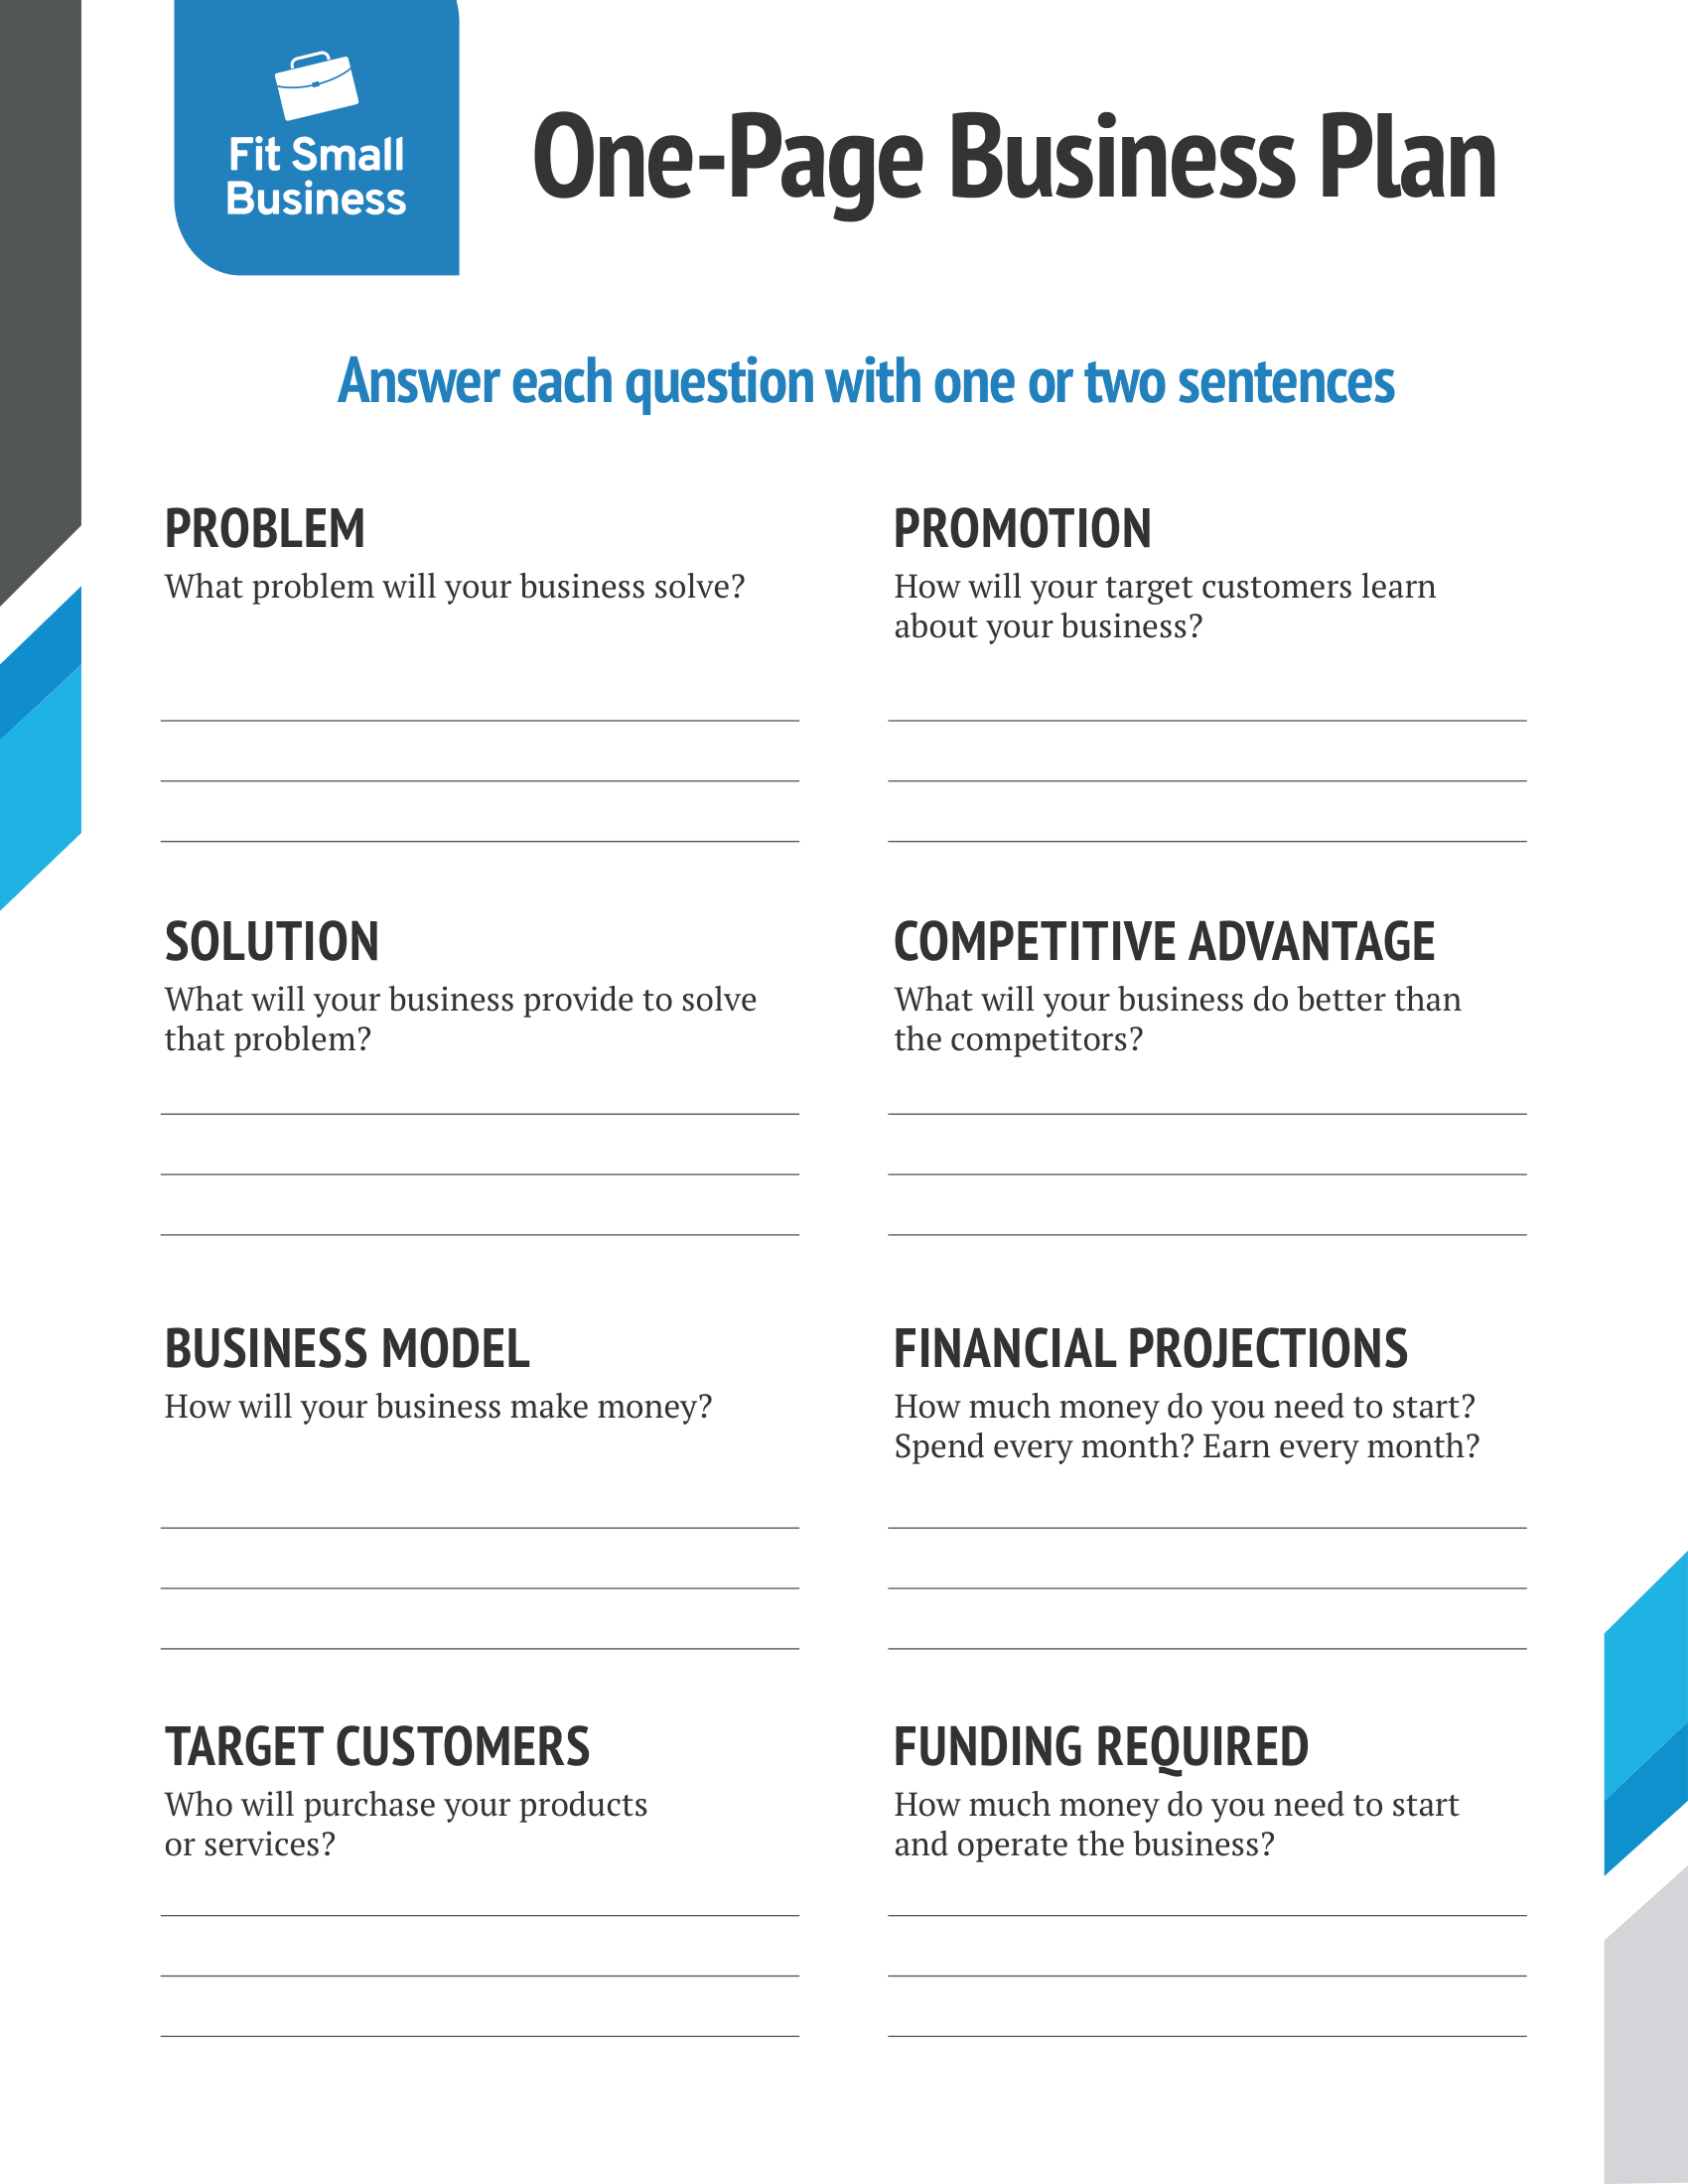 One-Page Business Plan